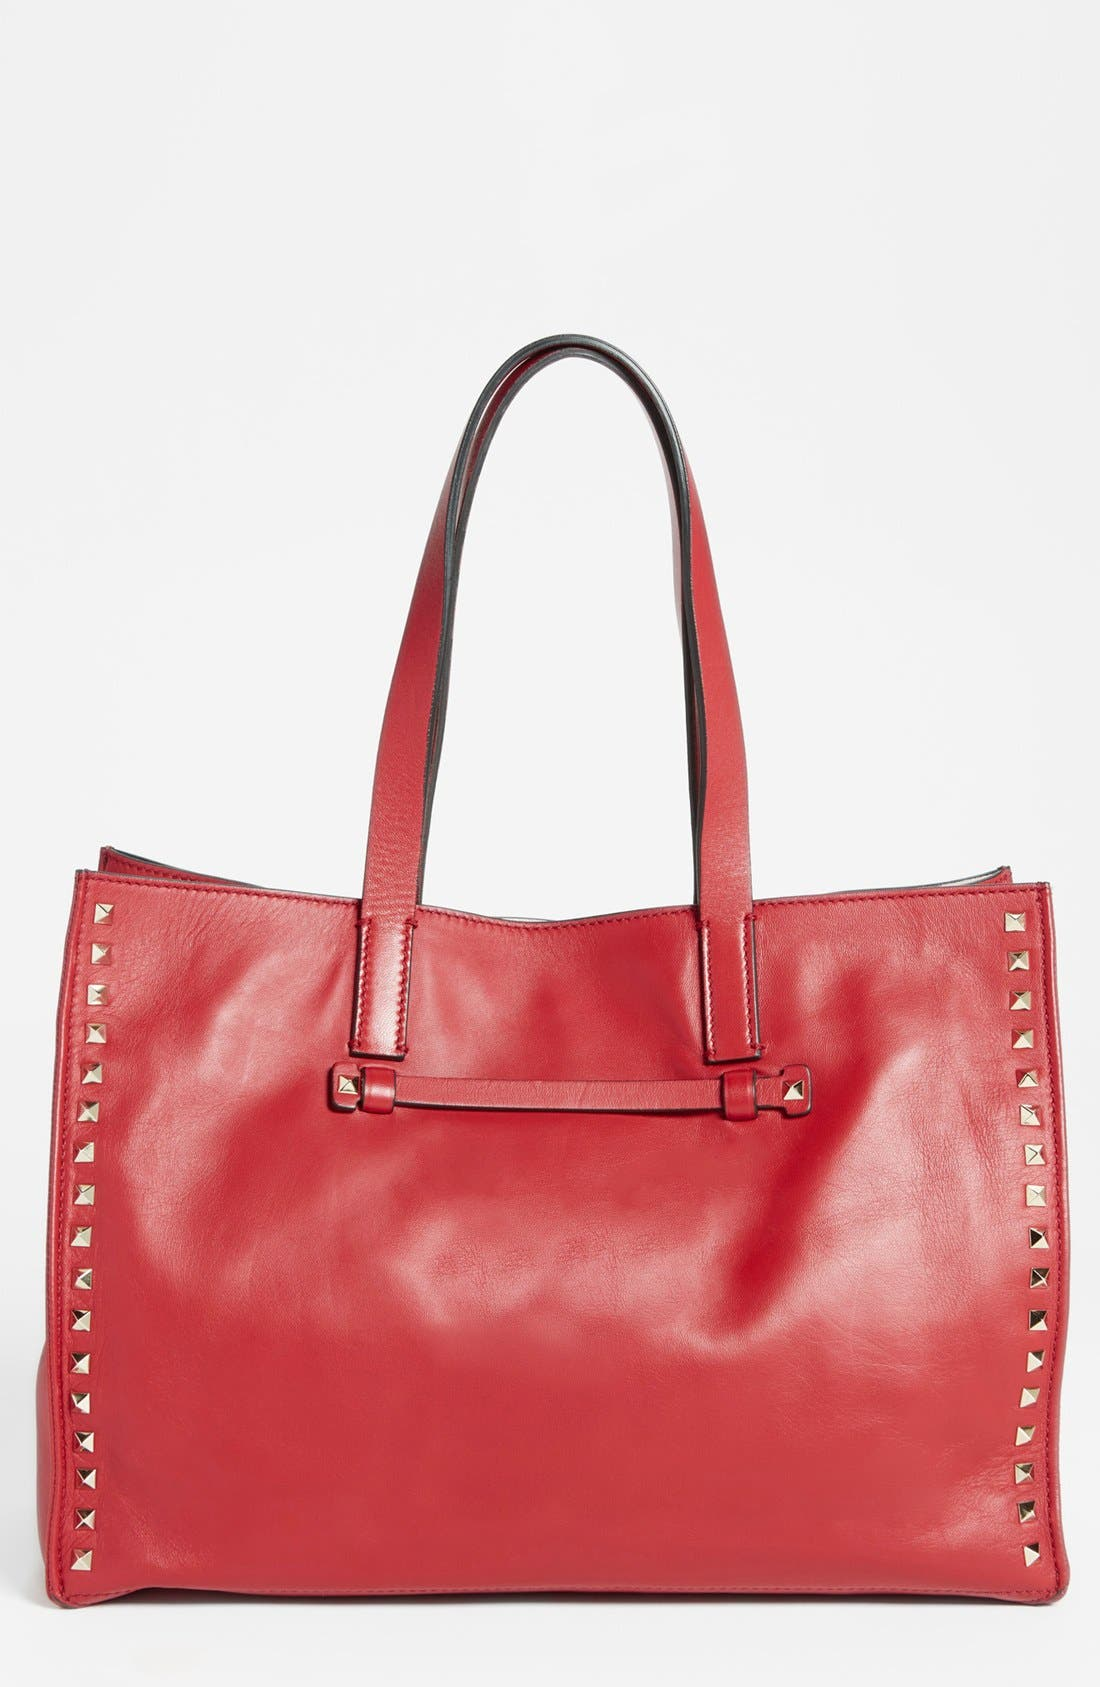 Alternate Image 1 Selected - Valentino 'Medium Rockstud' Leather Tote